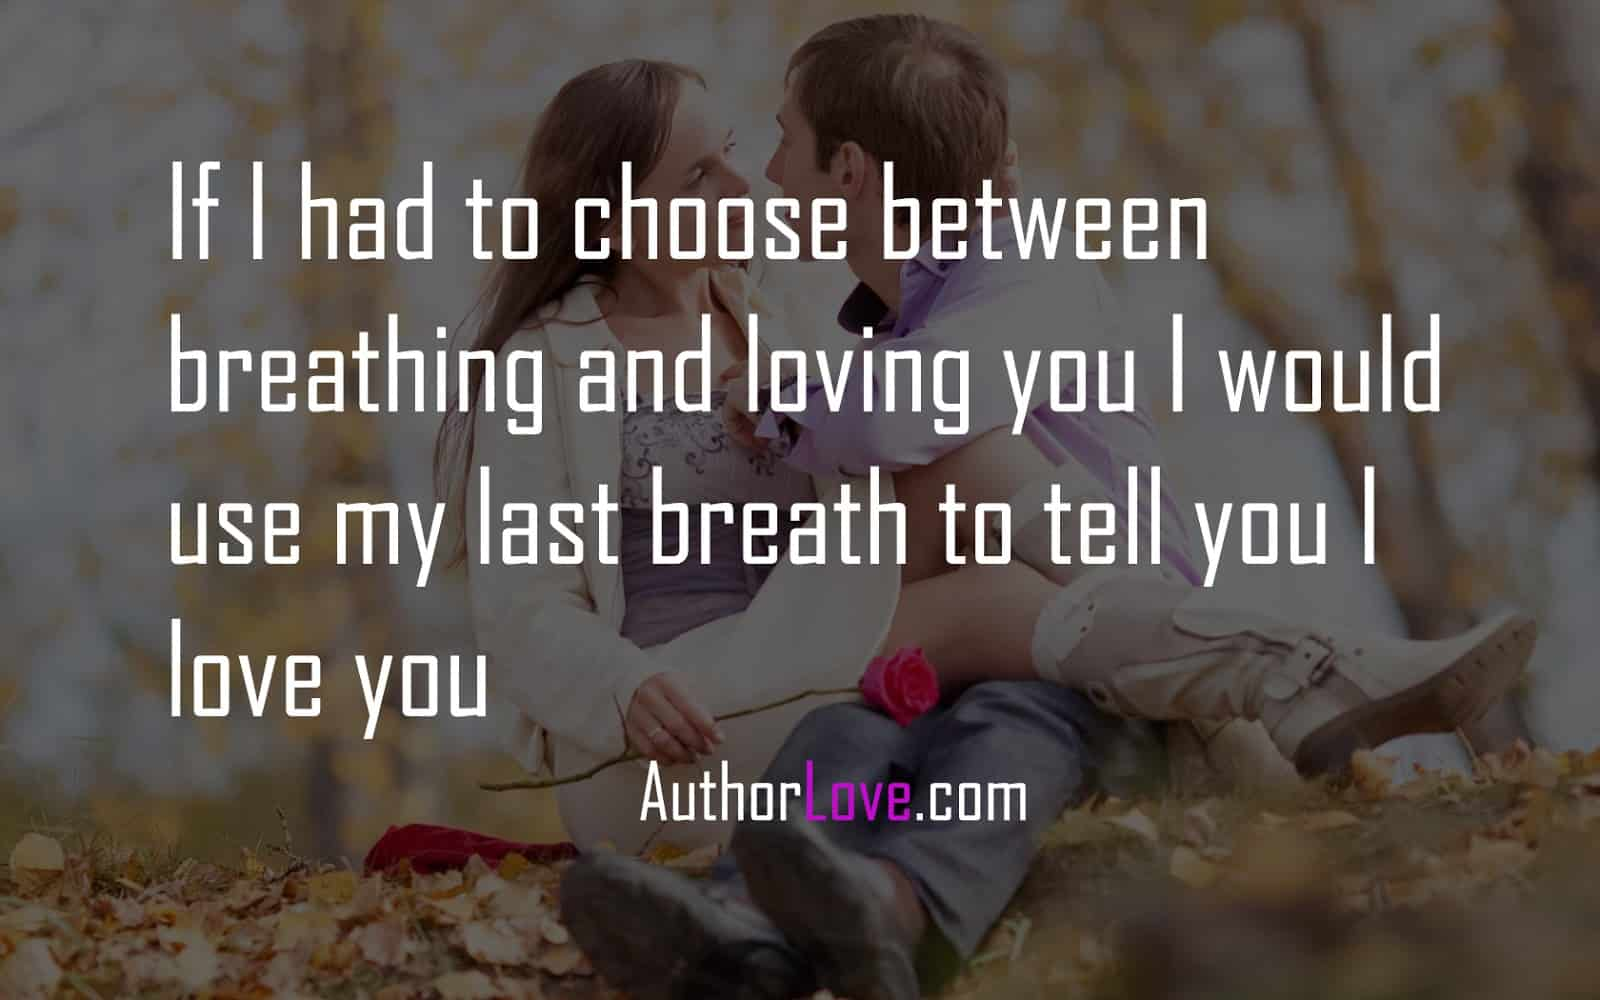 I Love You Images For Him And Her - Most Romantic Quotes For Her Ever , HD Wallpaper & Backgrounds